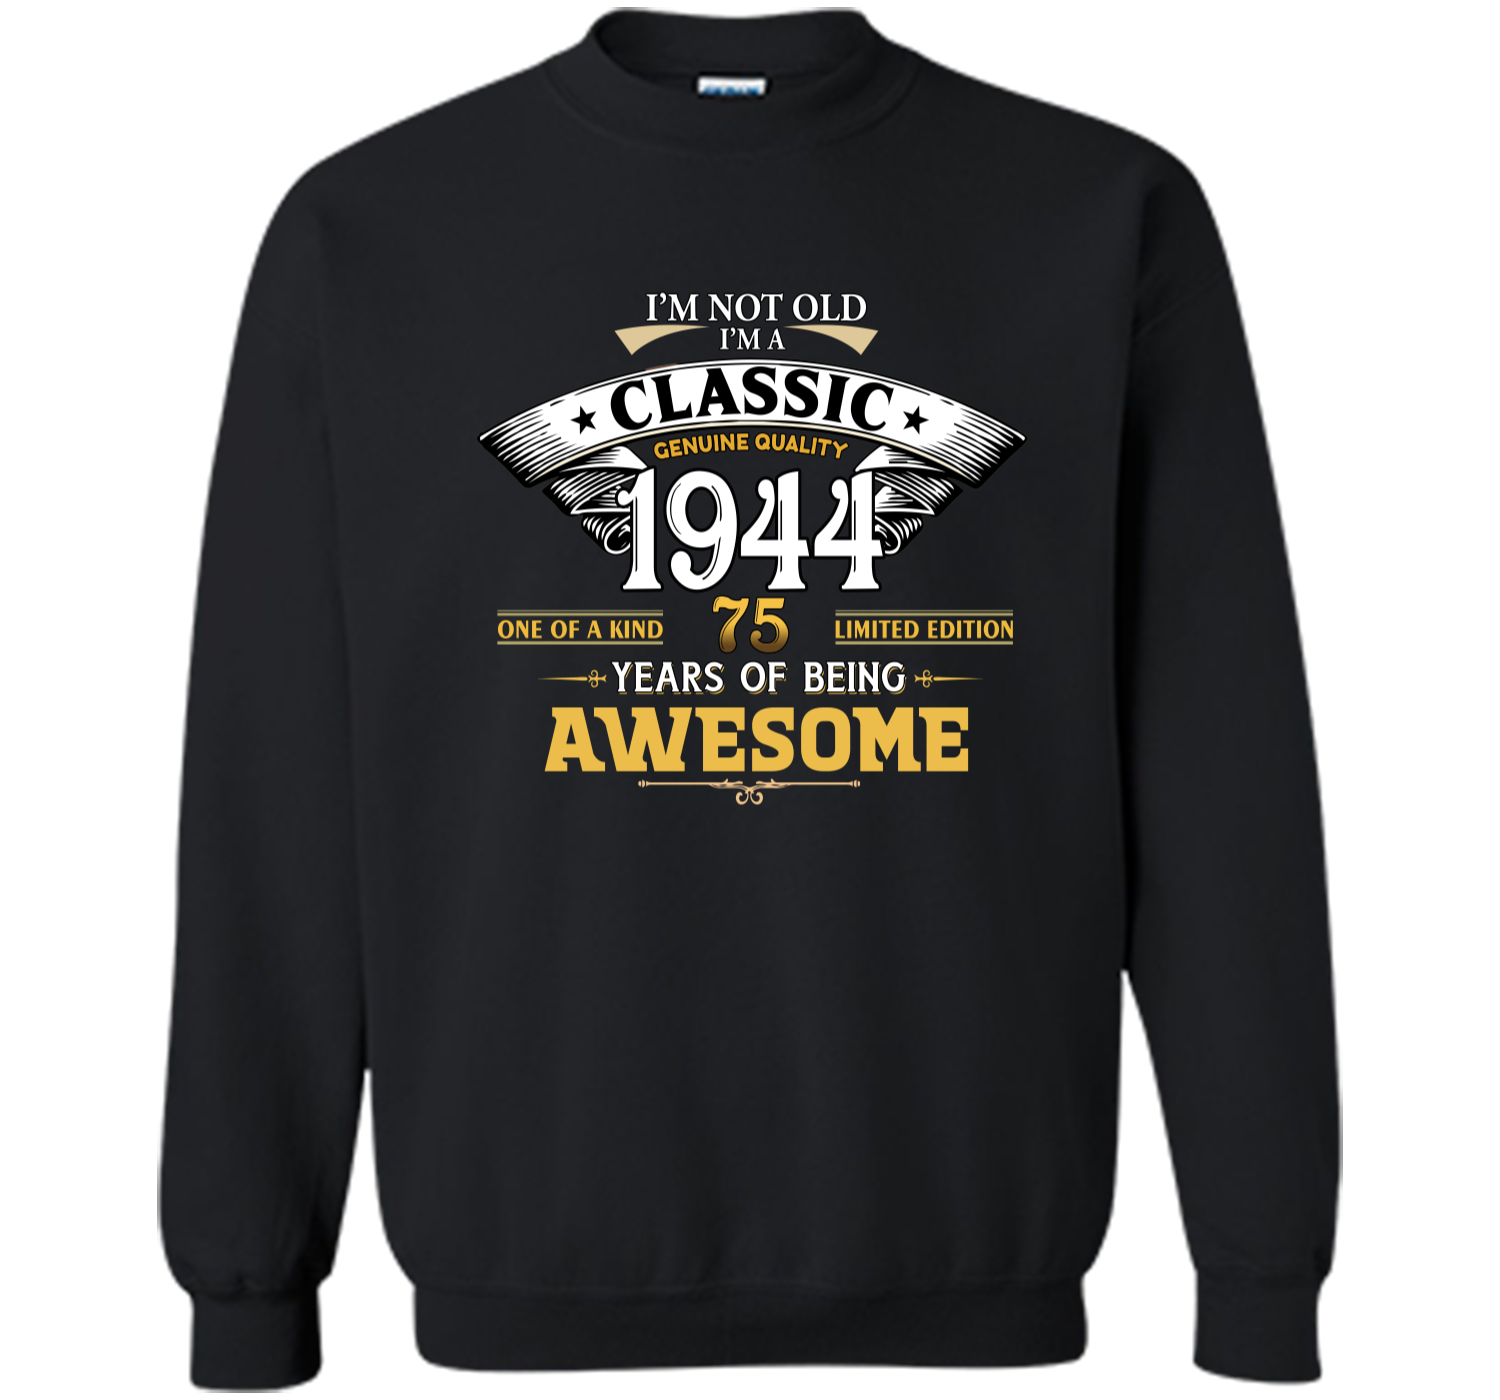 Classic Funny 1944 75th Birthday T Shirts Years Of Awesome Printed Crewneck Pullover Sweatshirt 8